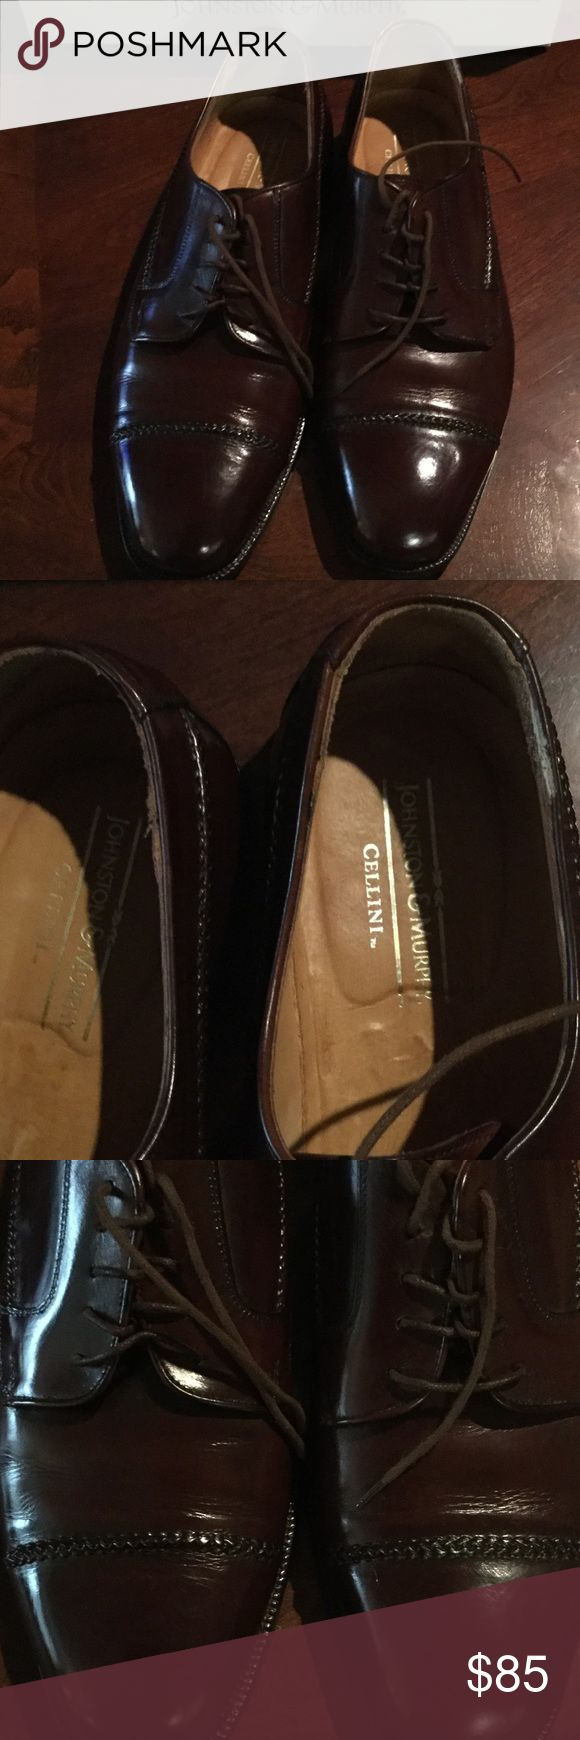 Johnston and Murphy Men's Shoes These shoes were made in Italy the color is call Saddle Tan and they were purchase at the Johnston and Murphy Store Excellent condition Johnston & Murphy Shoes Loafers & Slip-Ons